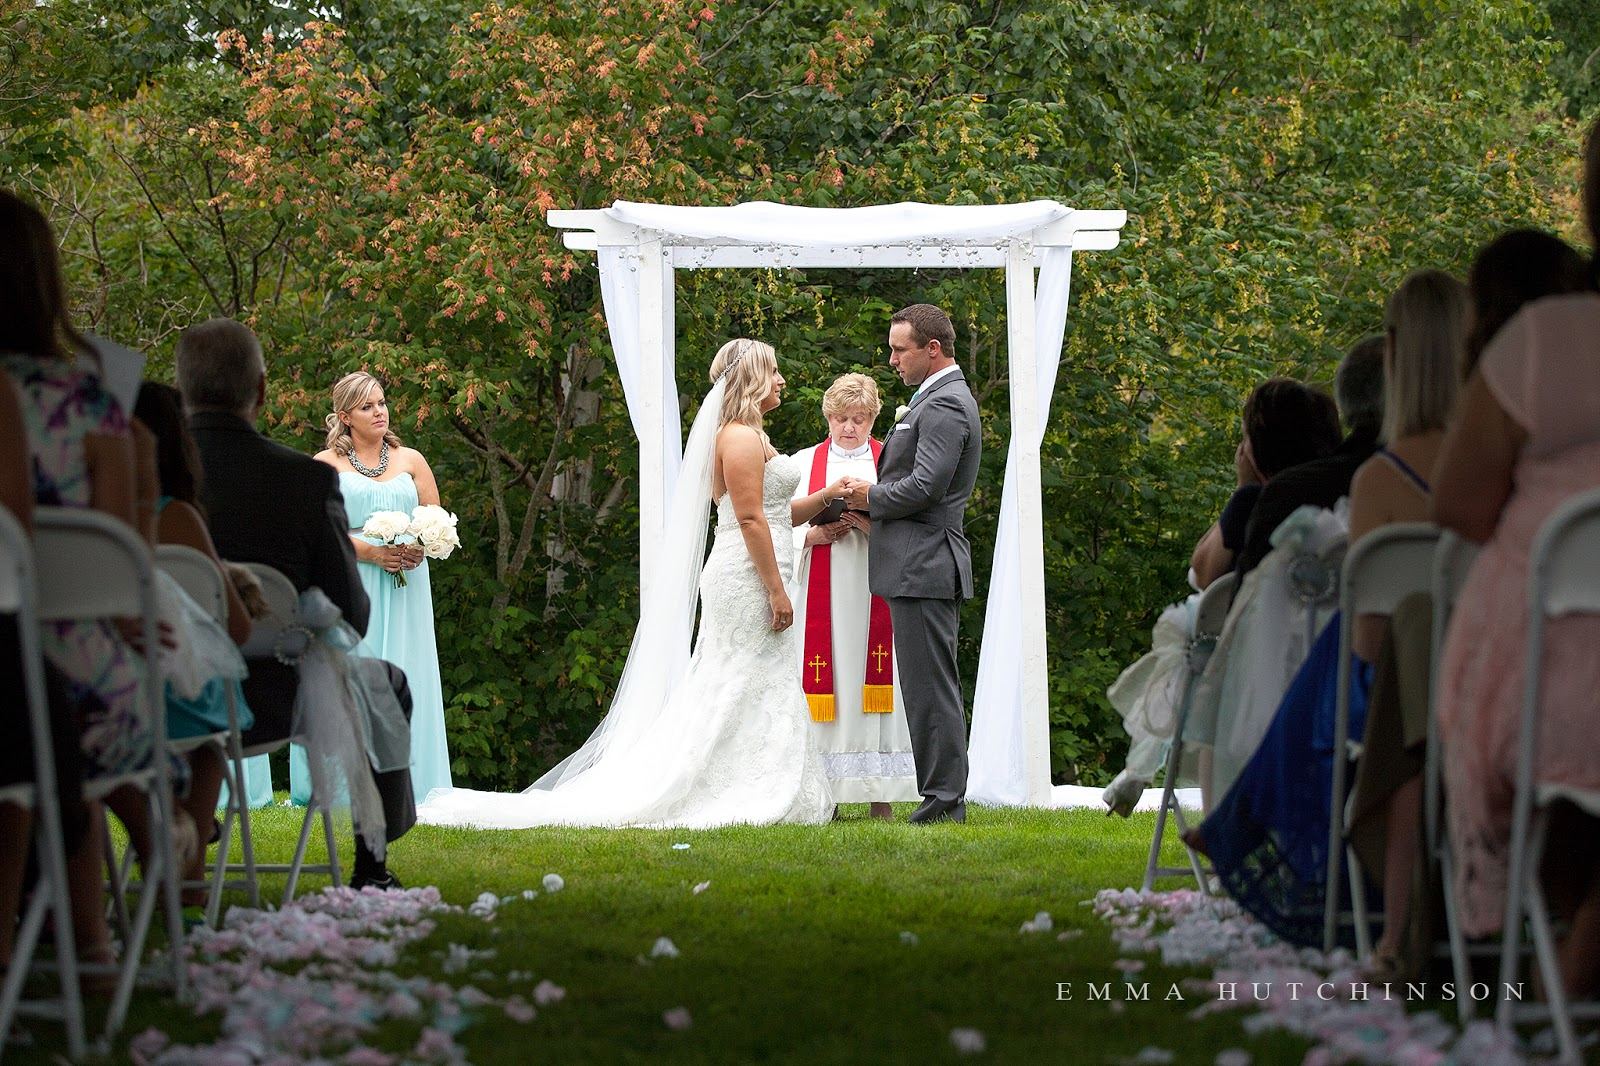 Grand Falls Windsor garden weddings in Central Newfoundland photographed by Emma Hutchinson